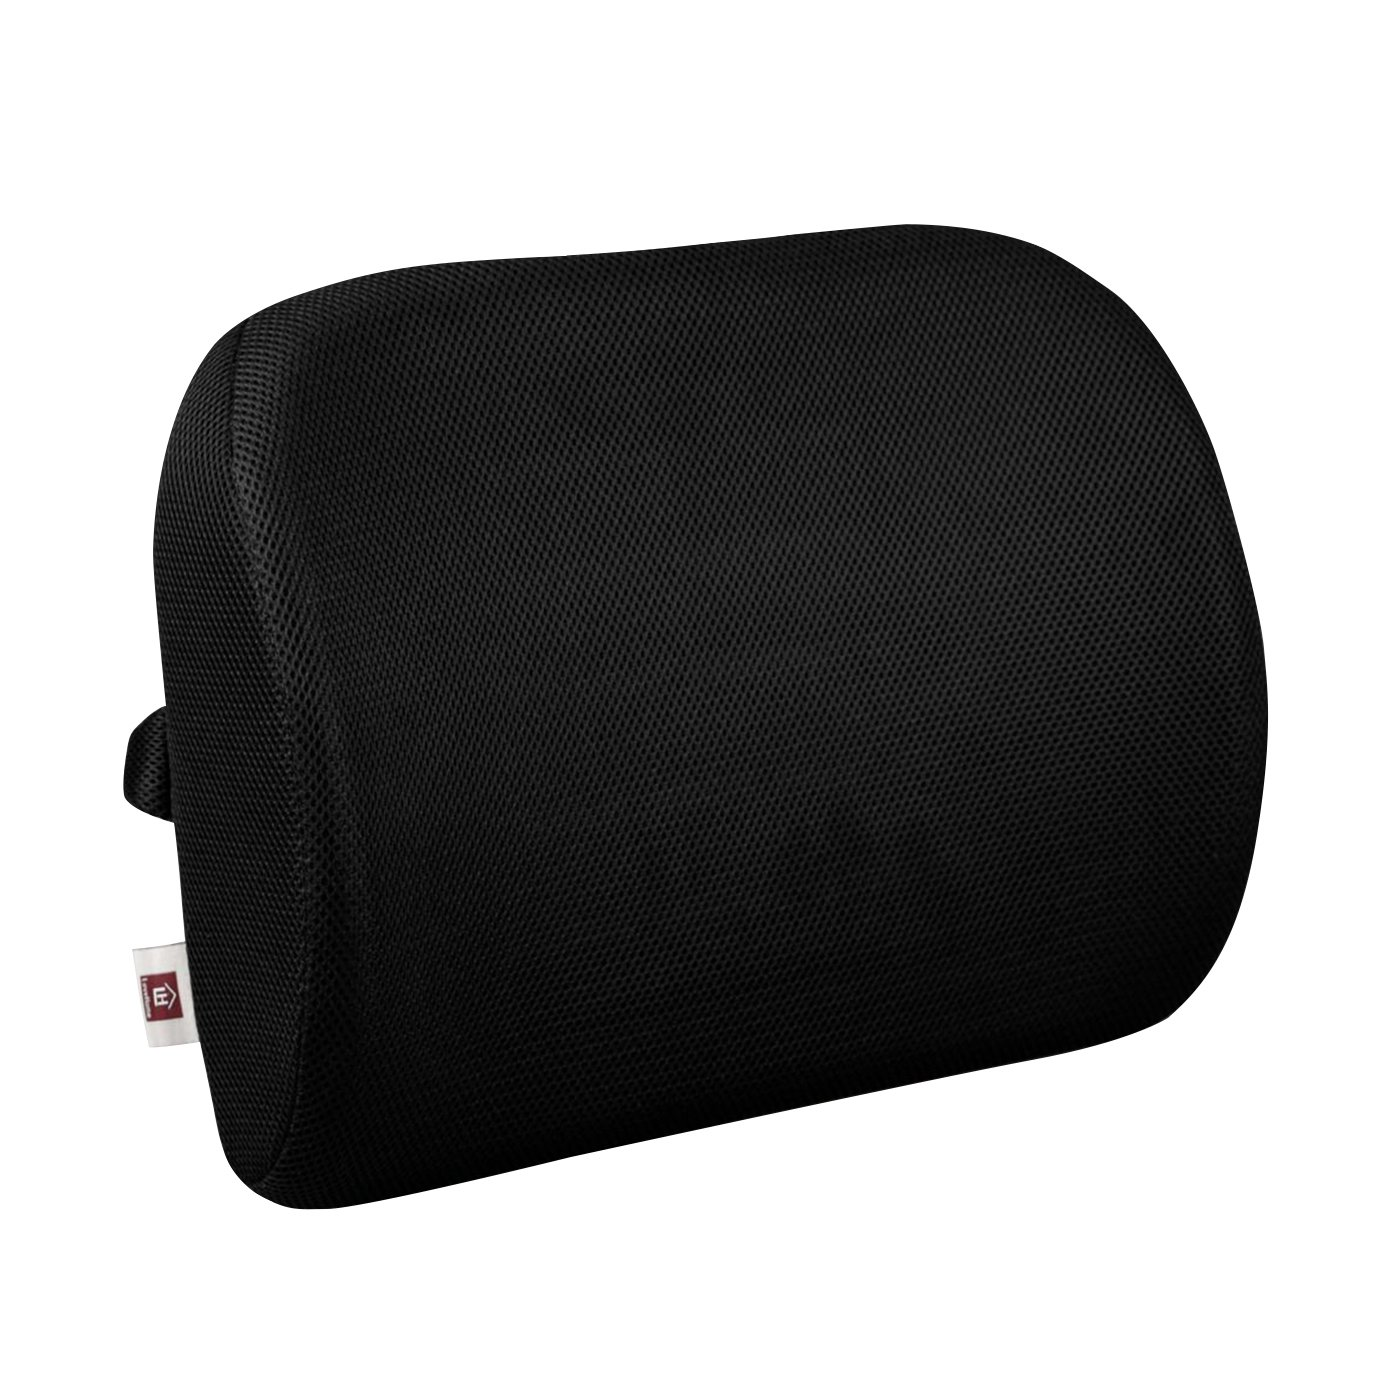 Amazon com black chair cushions - Lovehome Memory Foam Lumbar Support Back Cushion With 3 Way Strap And 3d Mesh Cover Designed For Lower Back Pain Relief Ideal